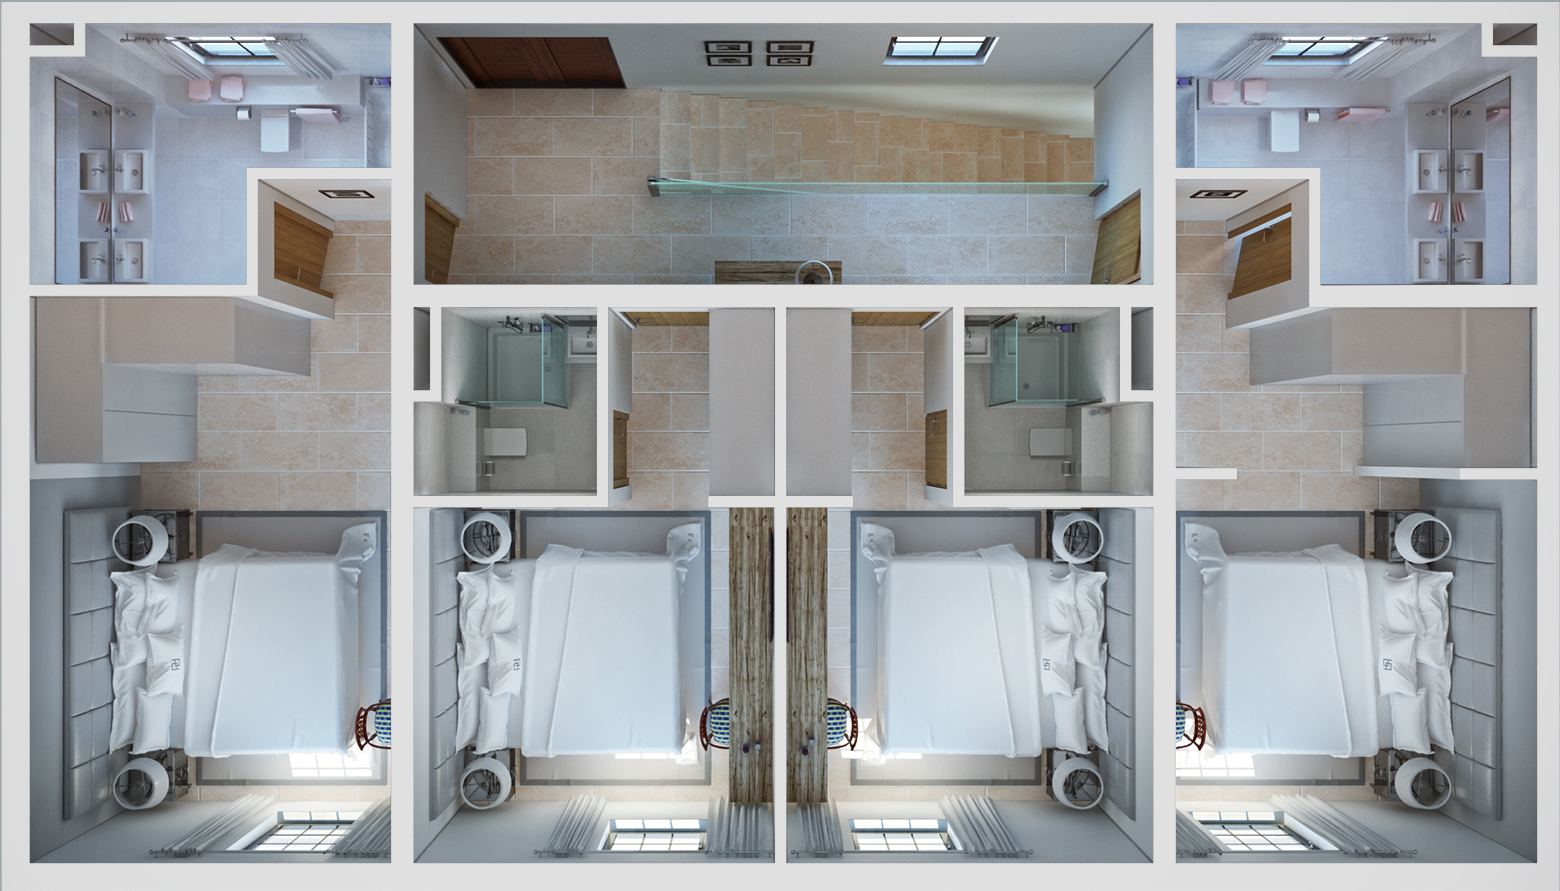 The 3D plan of the top floor of the residence with 4 bedrooms from above.